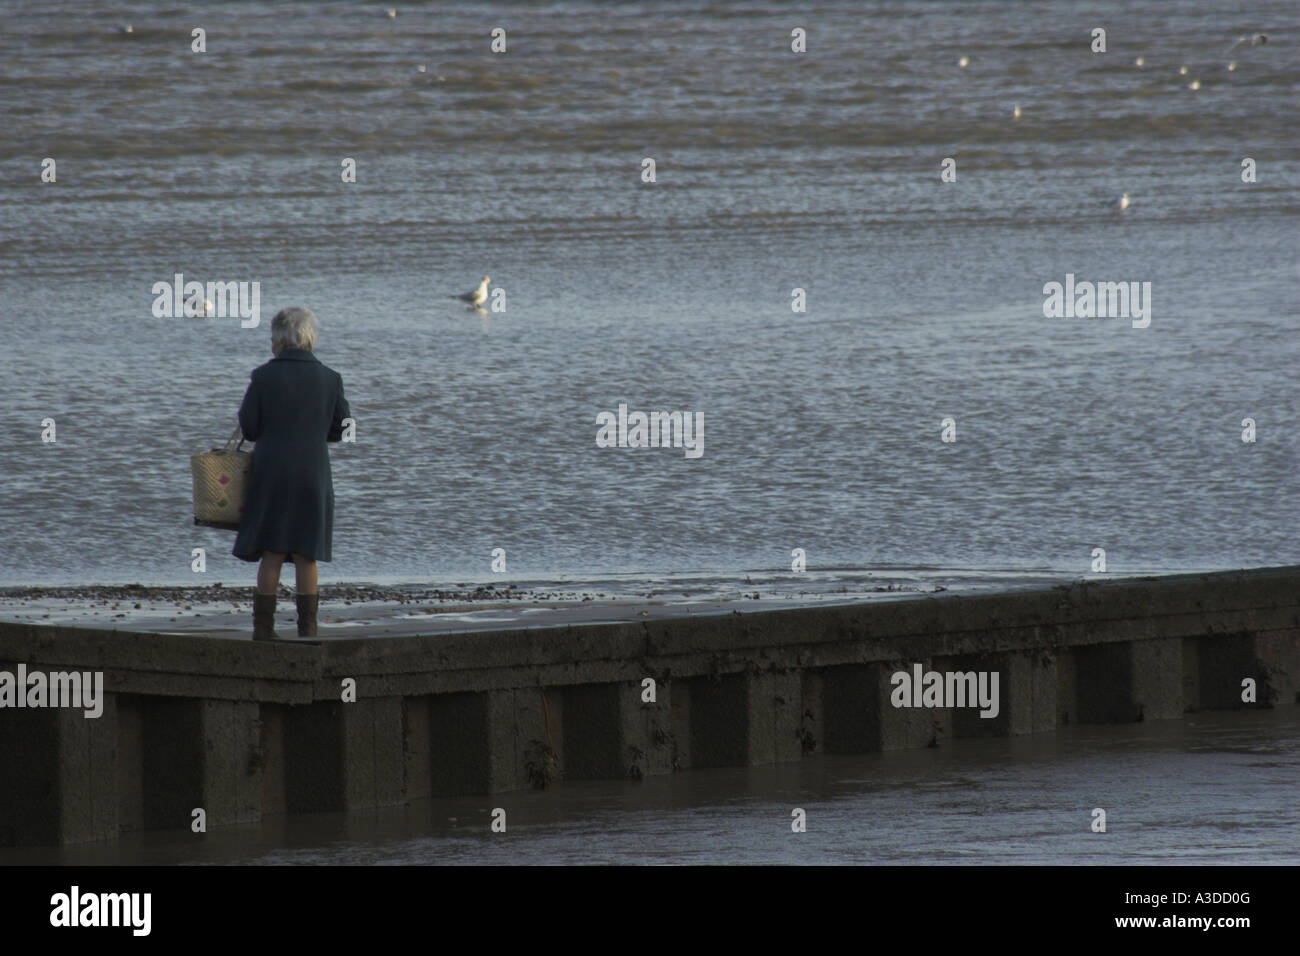 An elderly lady stands looking out to sea. Stock Photo